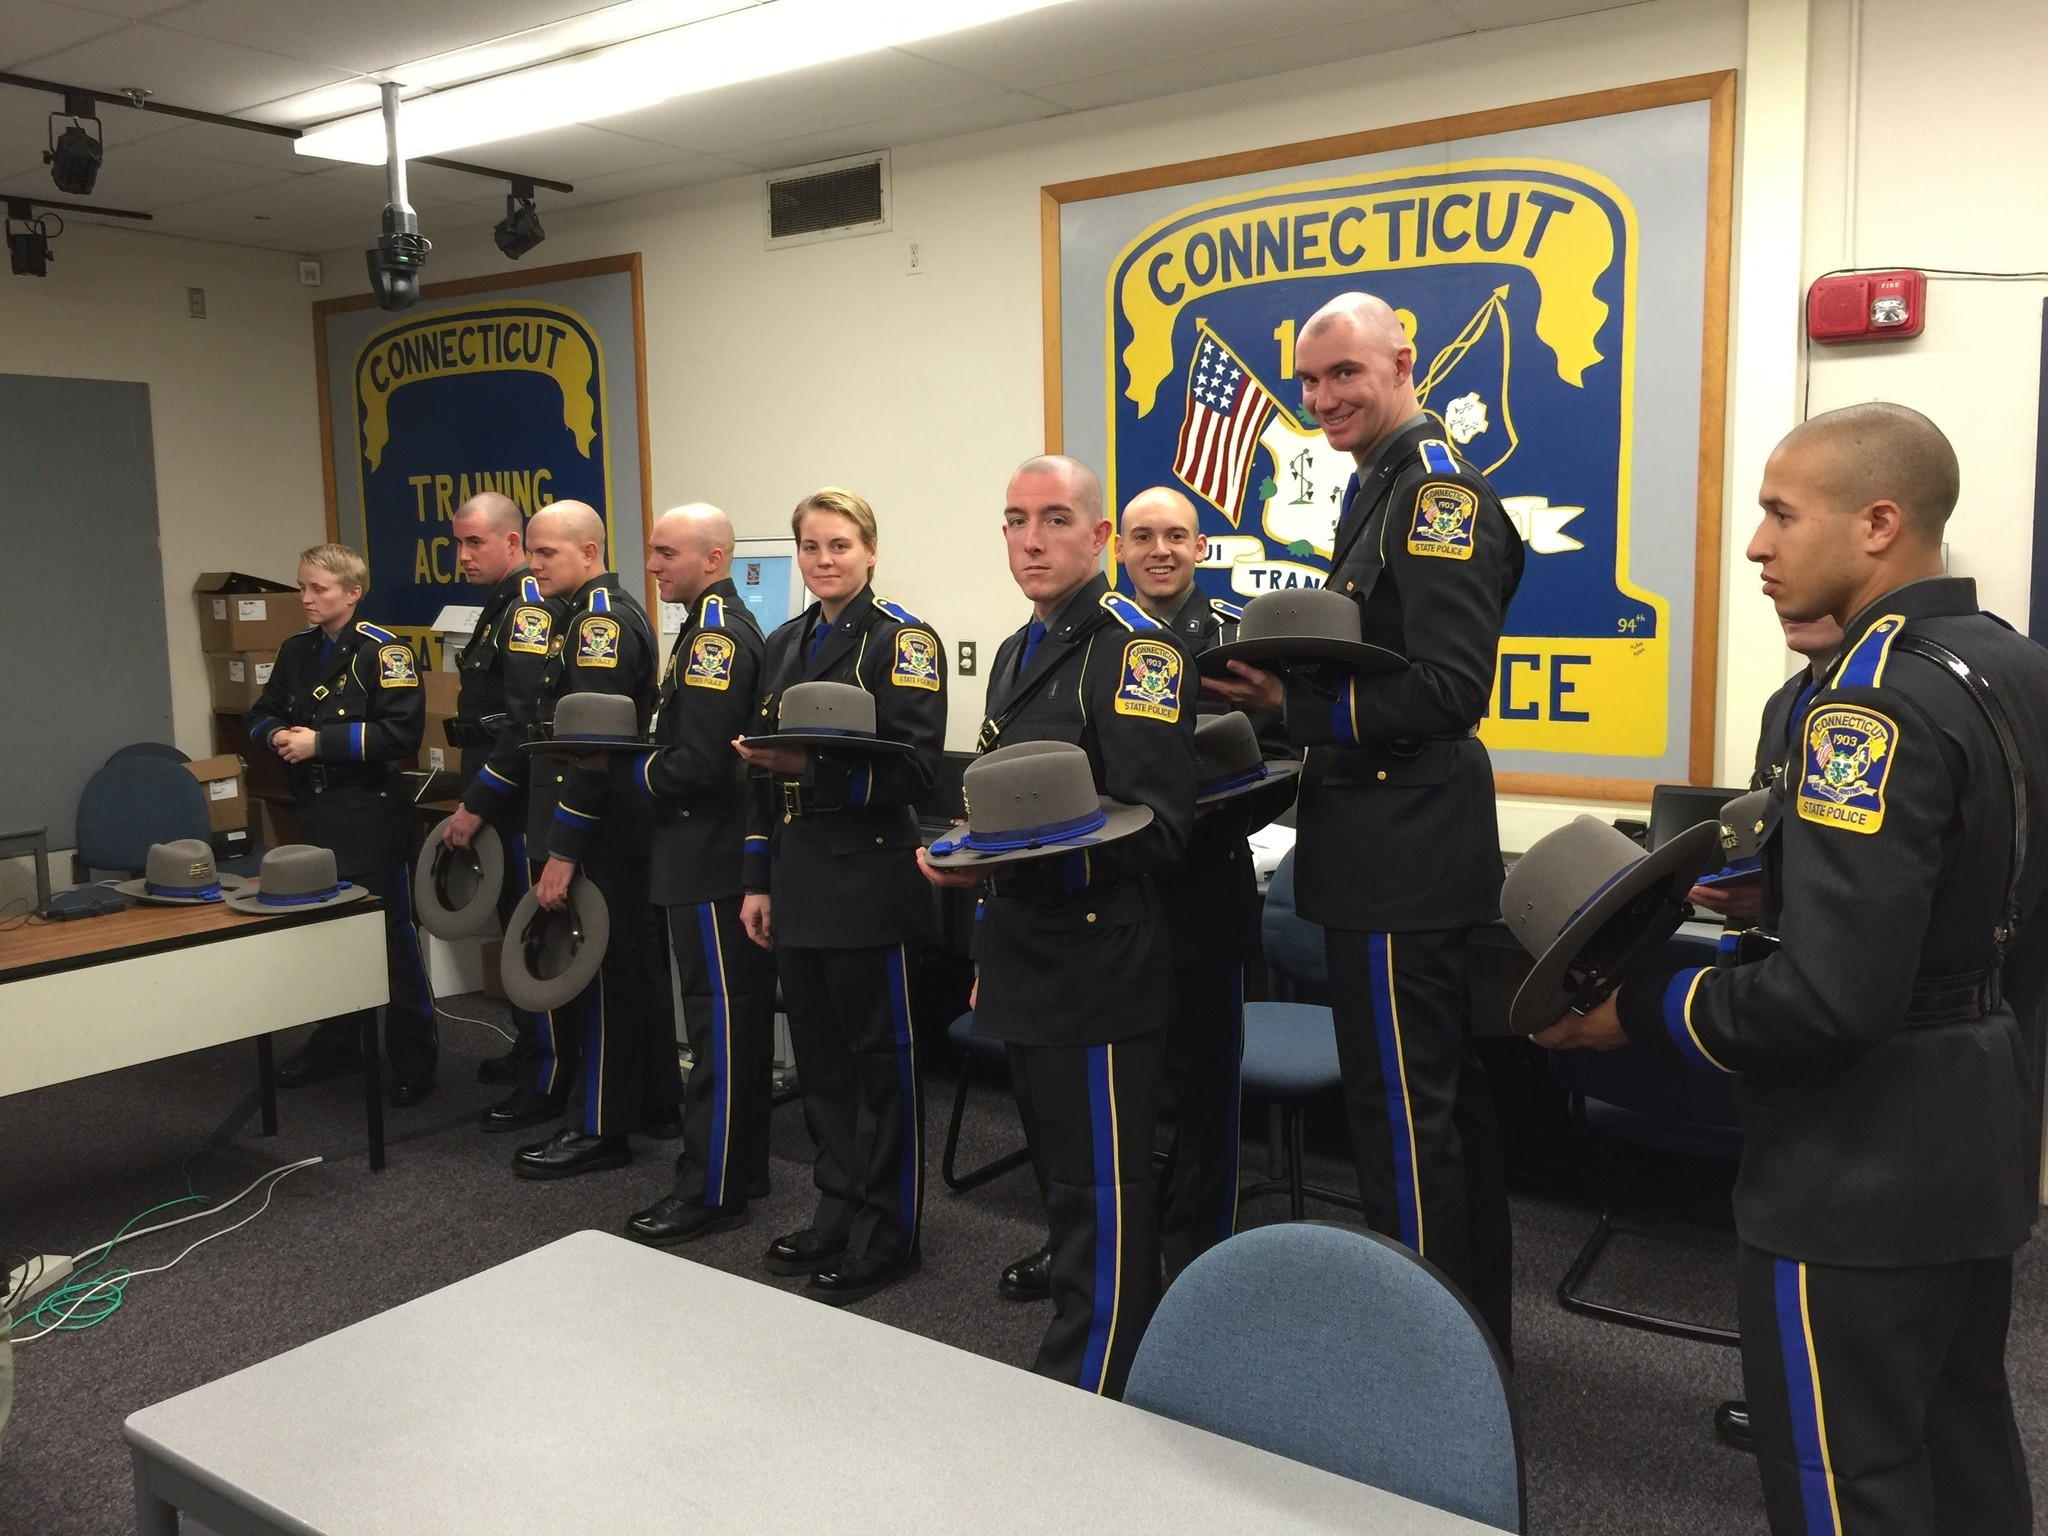 58 New State Police Troopers To Graduate - Hartford Courant